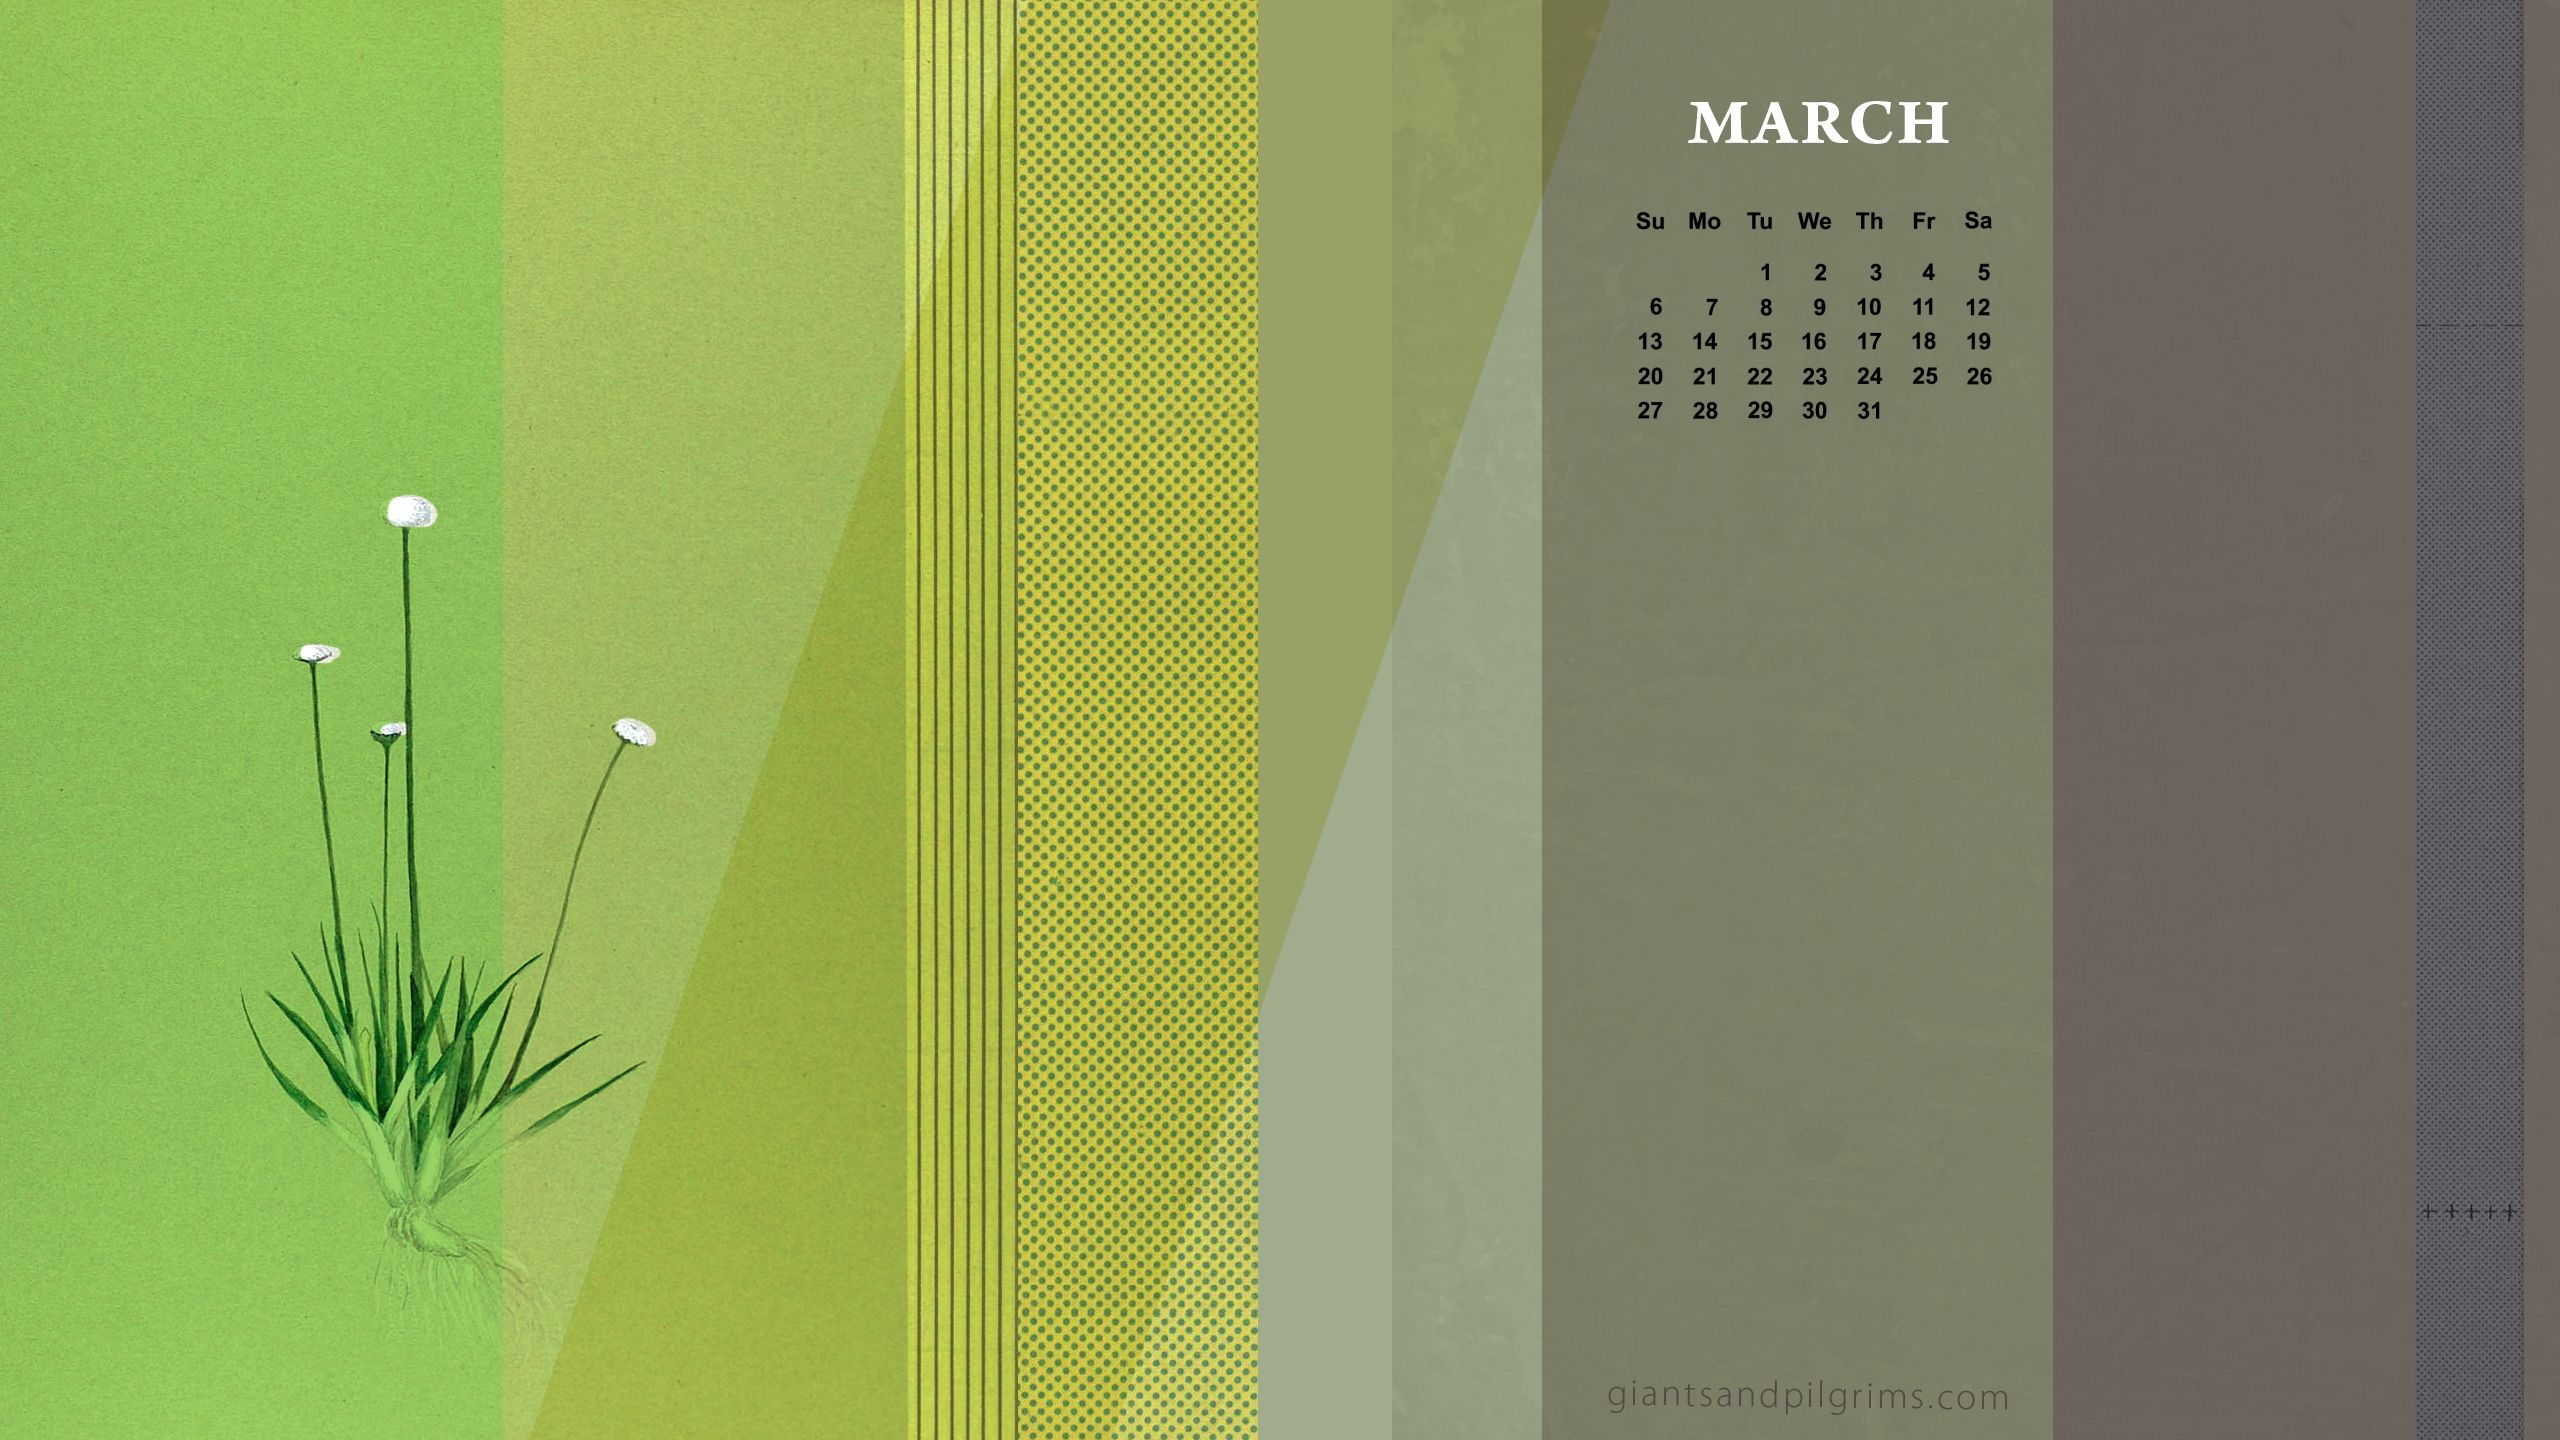 March Free Calendar Desktop And Iphone Wallpaper Giants